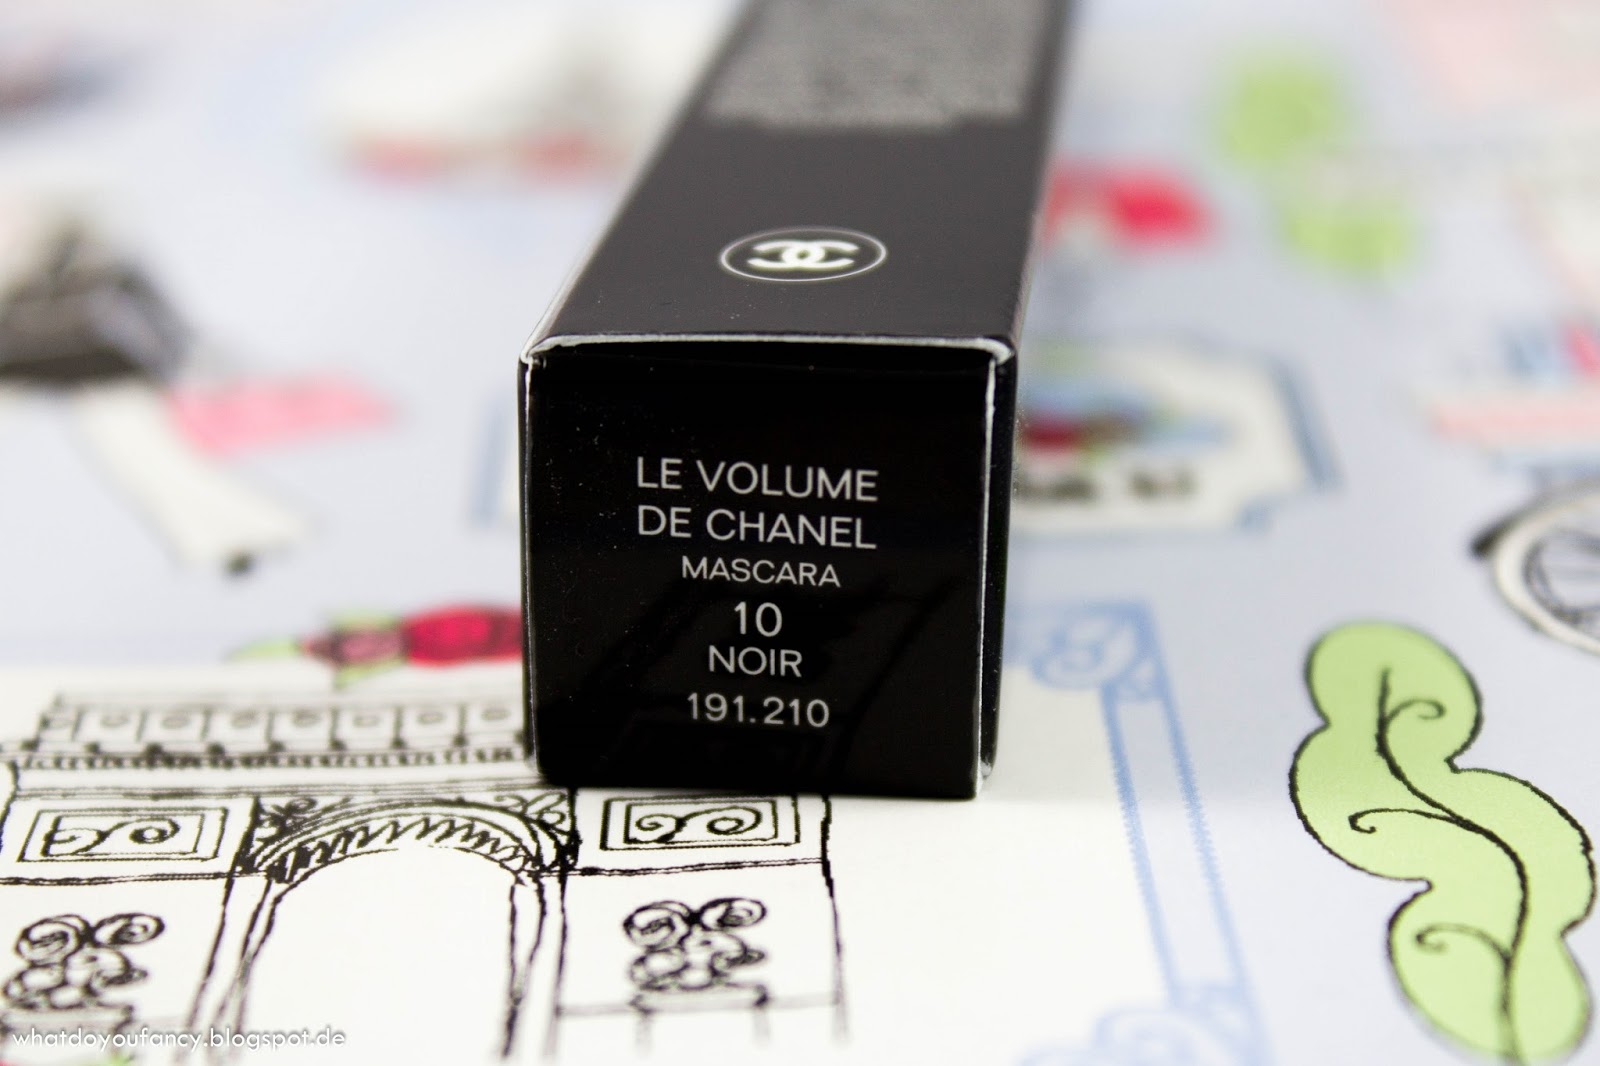 [My Look-Your Look Teil 4 - Meine Nr. 1 Mascara] - Chanel Le Volume